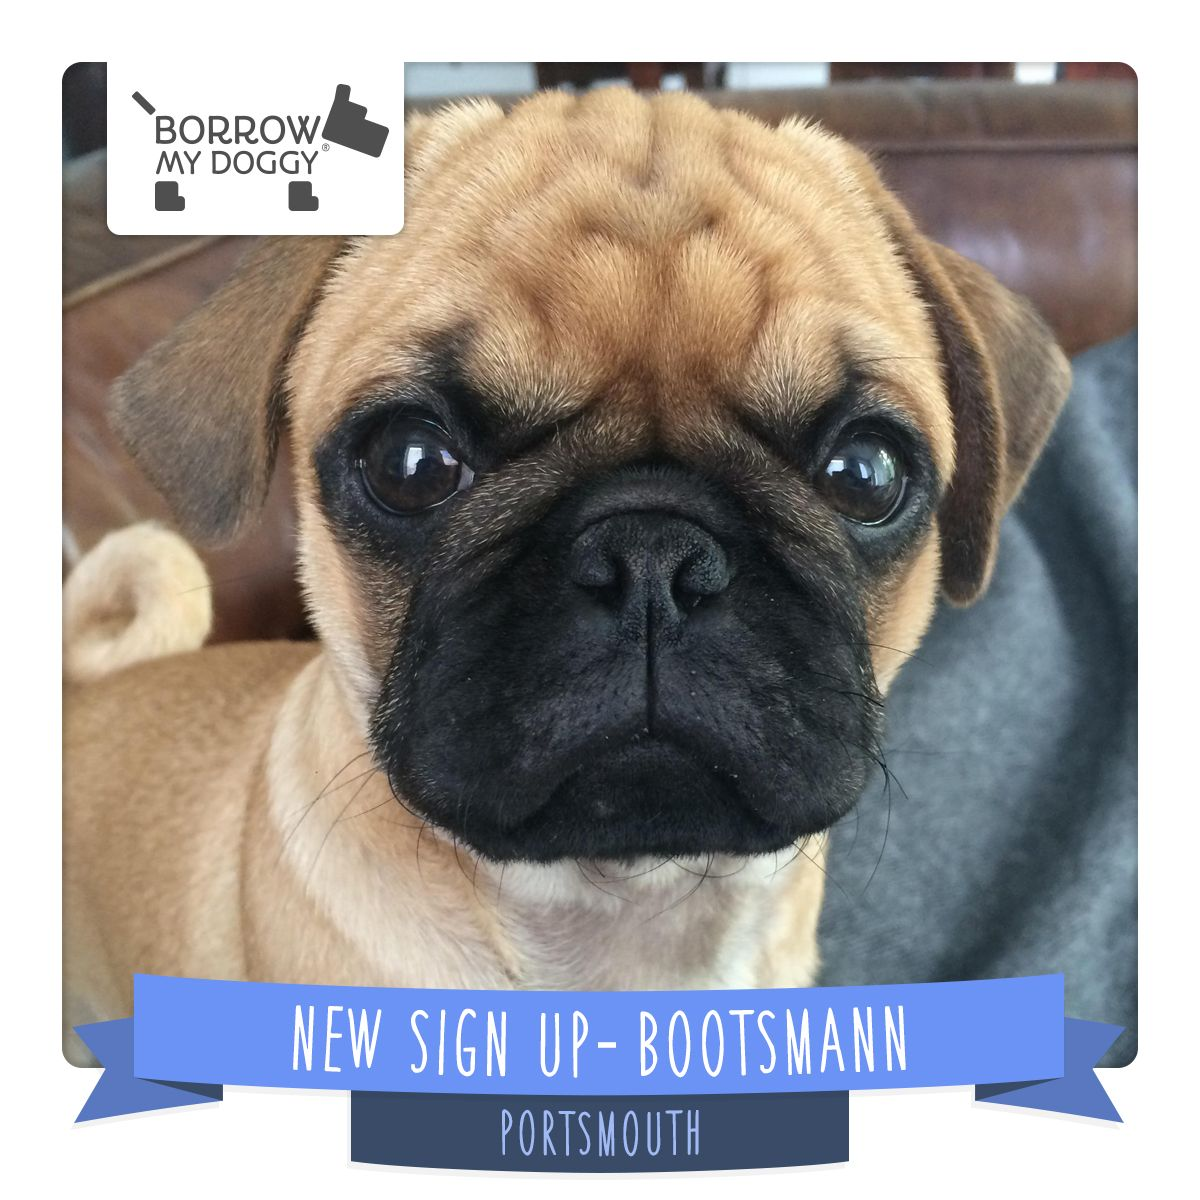 Bootsmann The Pug Is A Newdoggysignup From Portsmouth Who